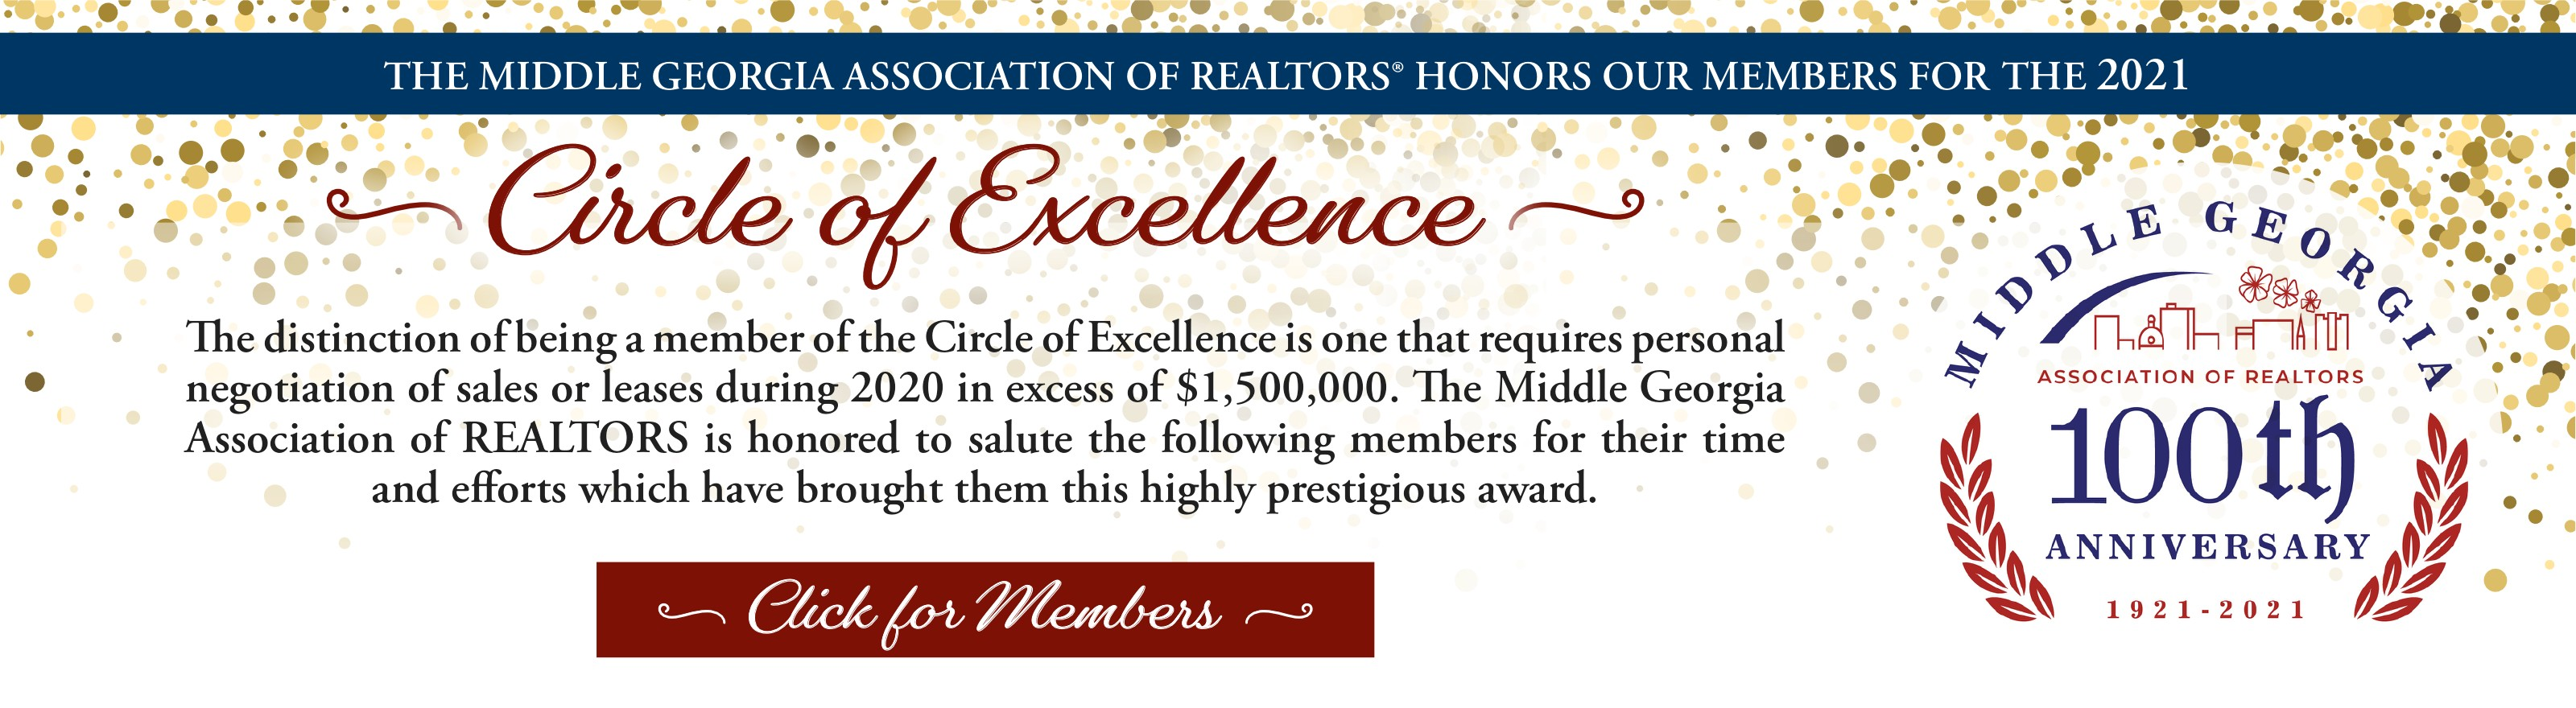 2021 Circle of Excellence Members